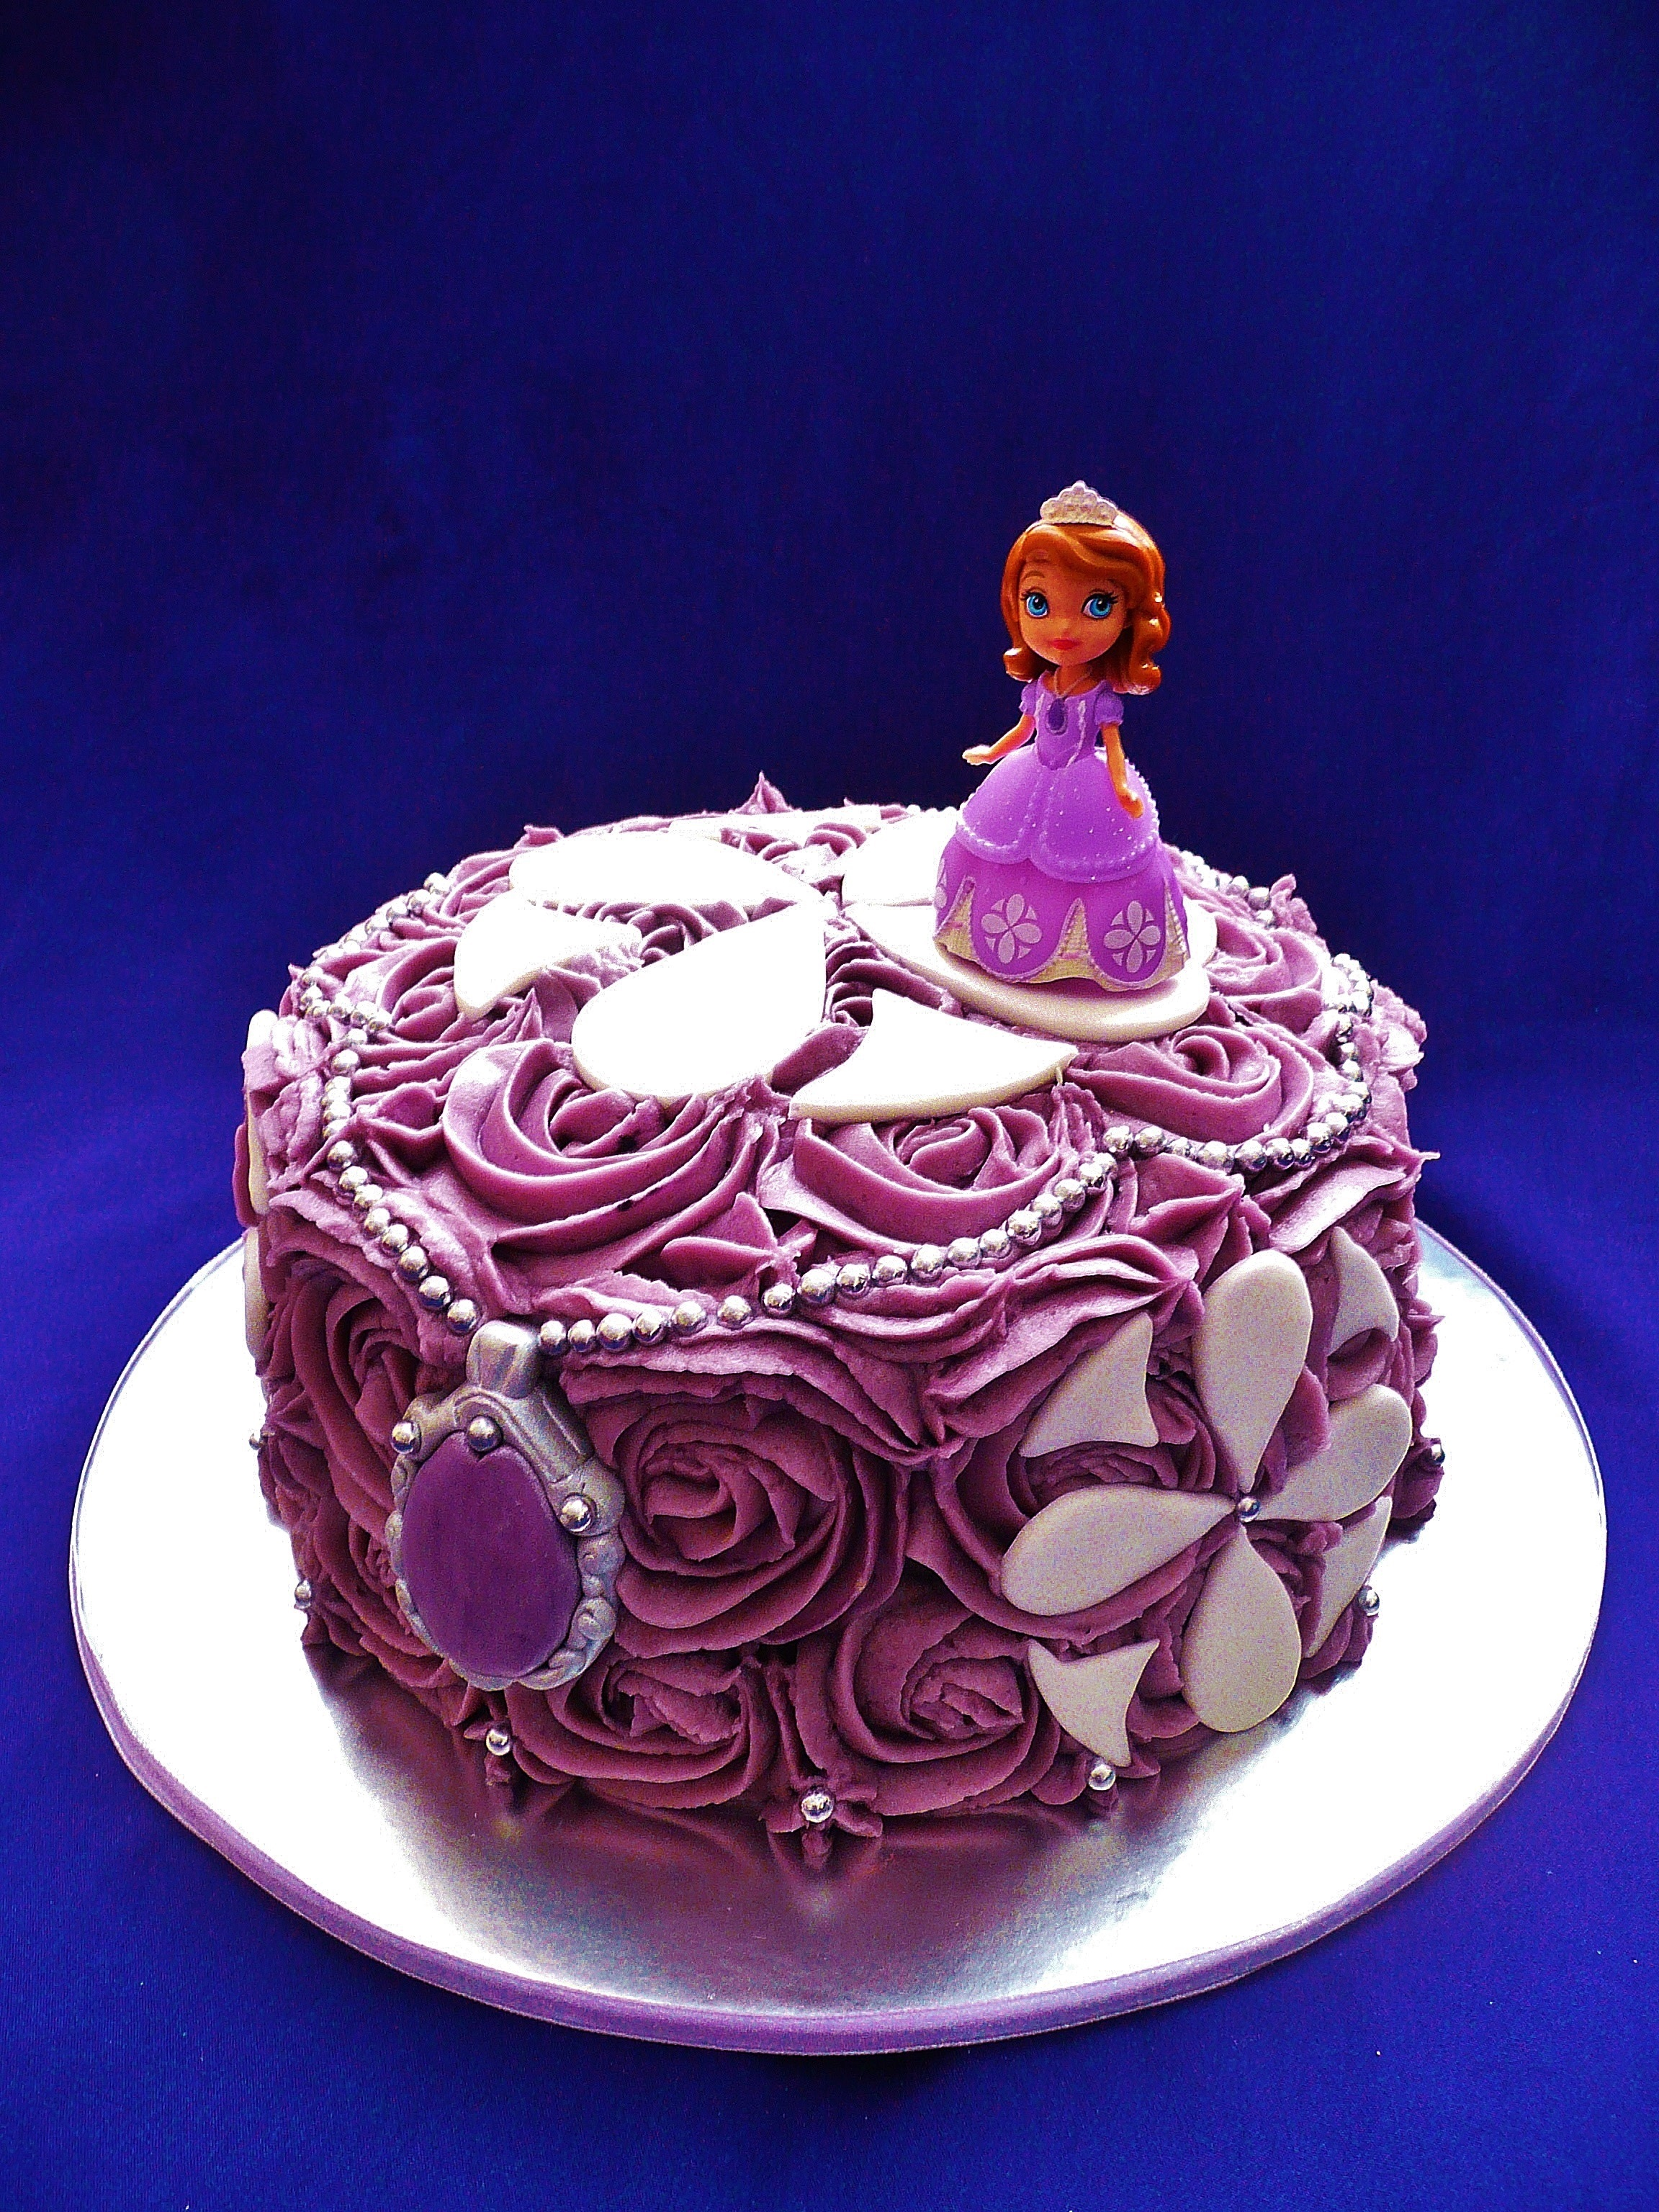 Cake Images Of Sofia The First : Sofia Cakes Cake Ideas and Designs